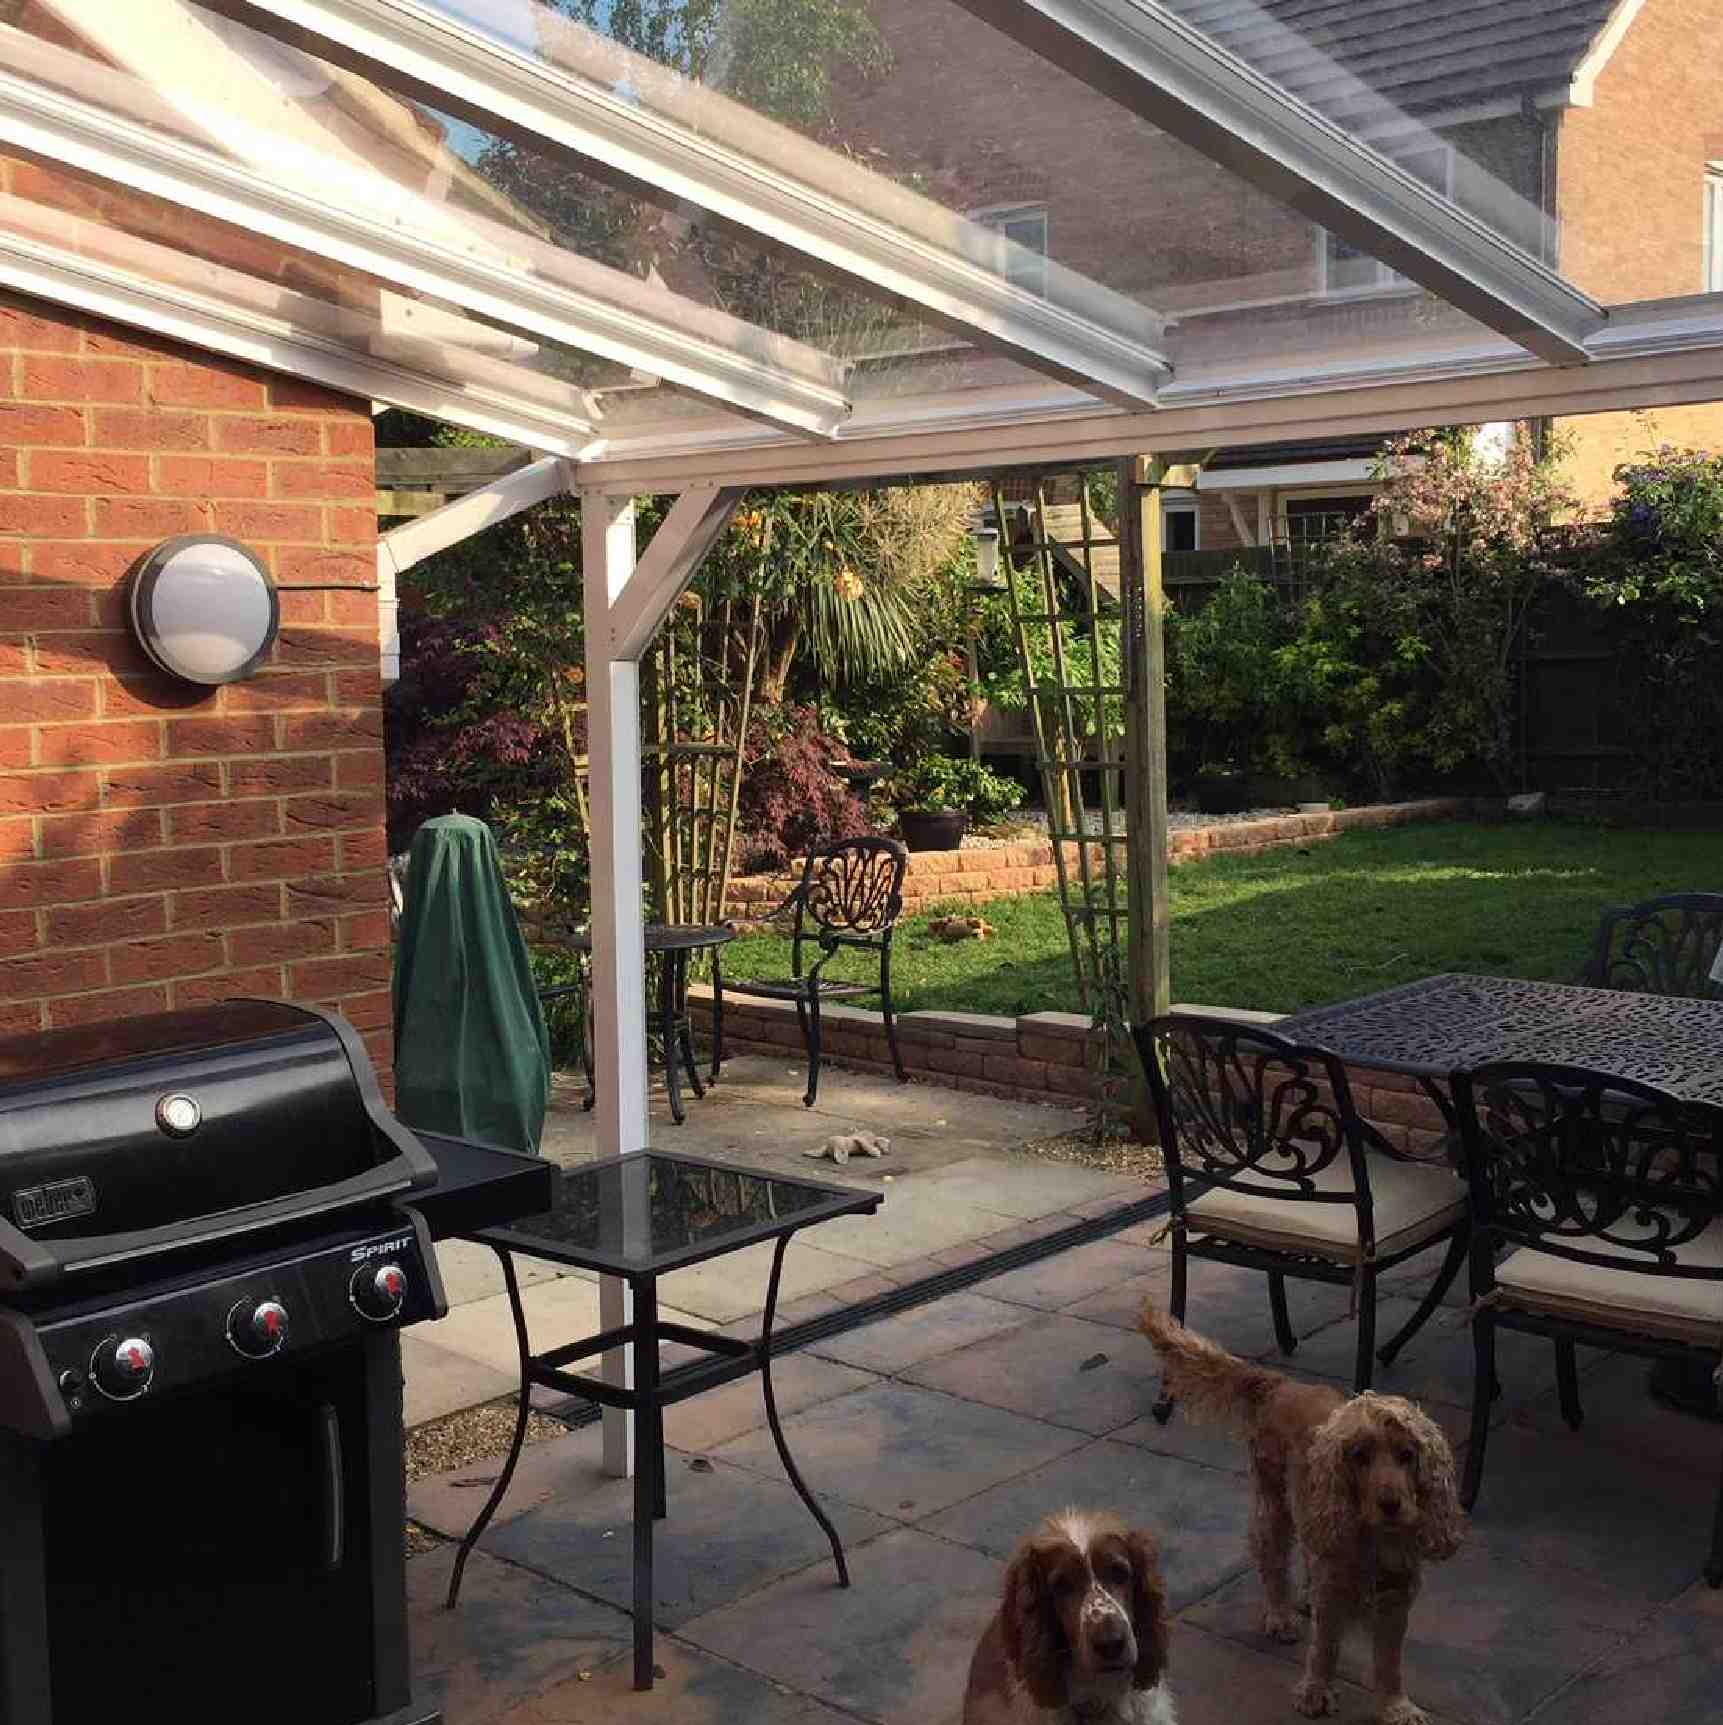 Omega Verandah with 16mm Polycarbonate Glazing - 6.0m (W) x 1.5m (P), (3) Supporting Posts